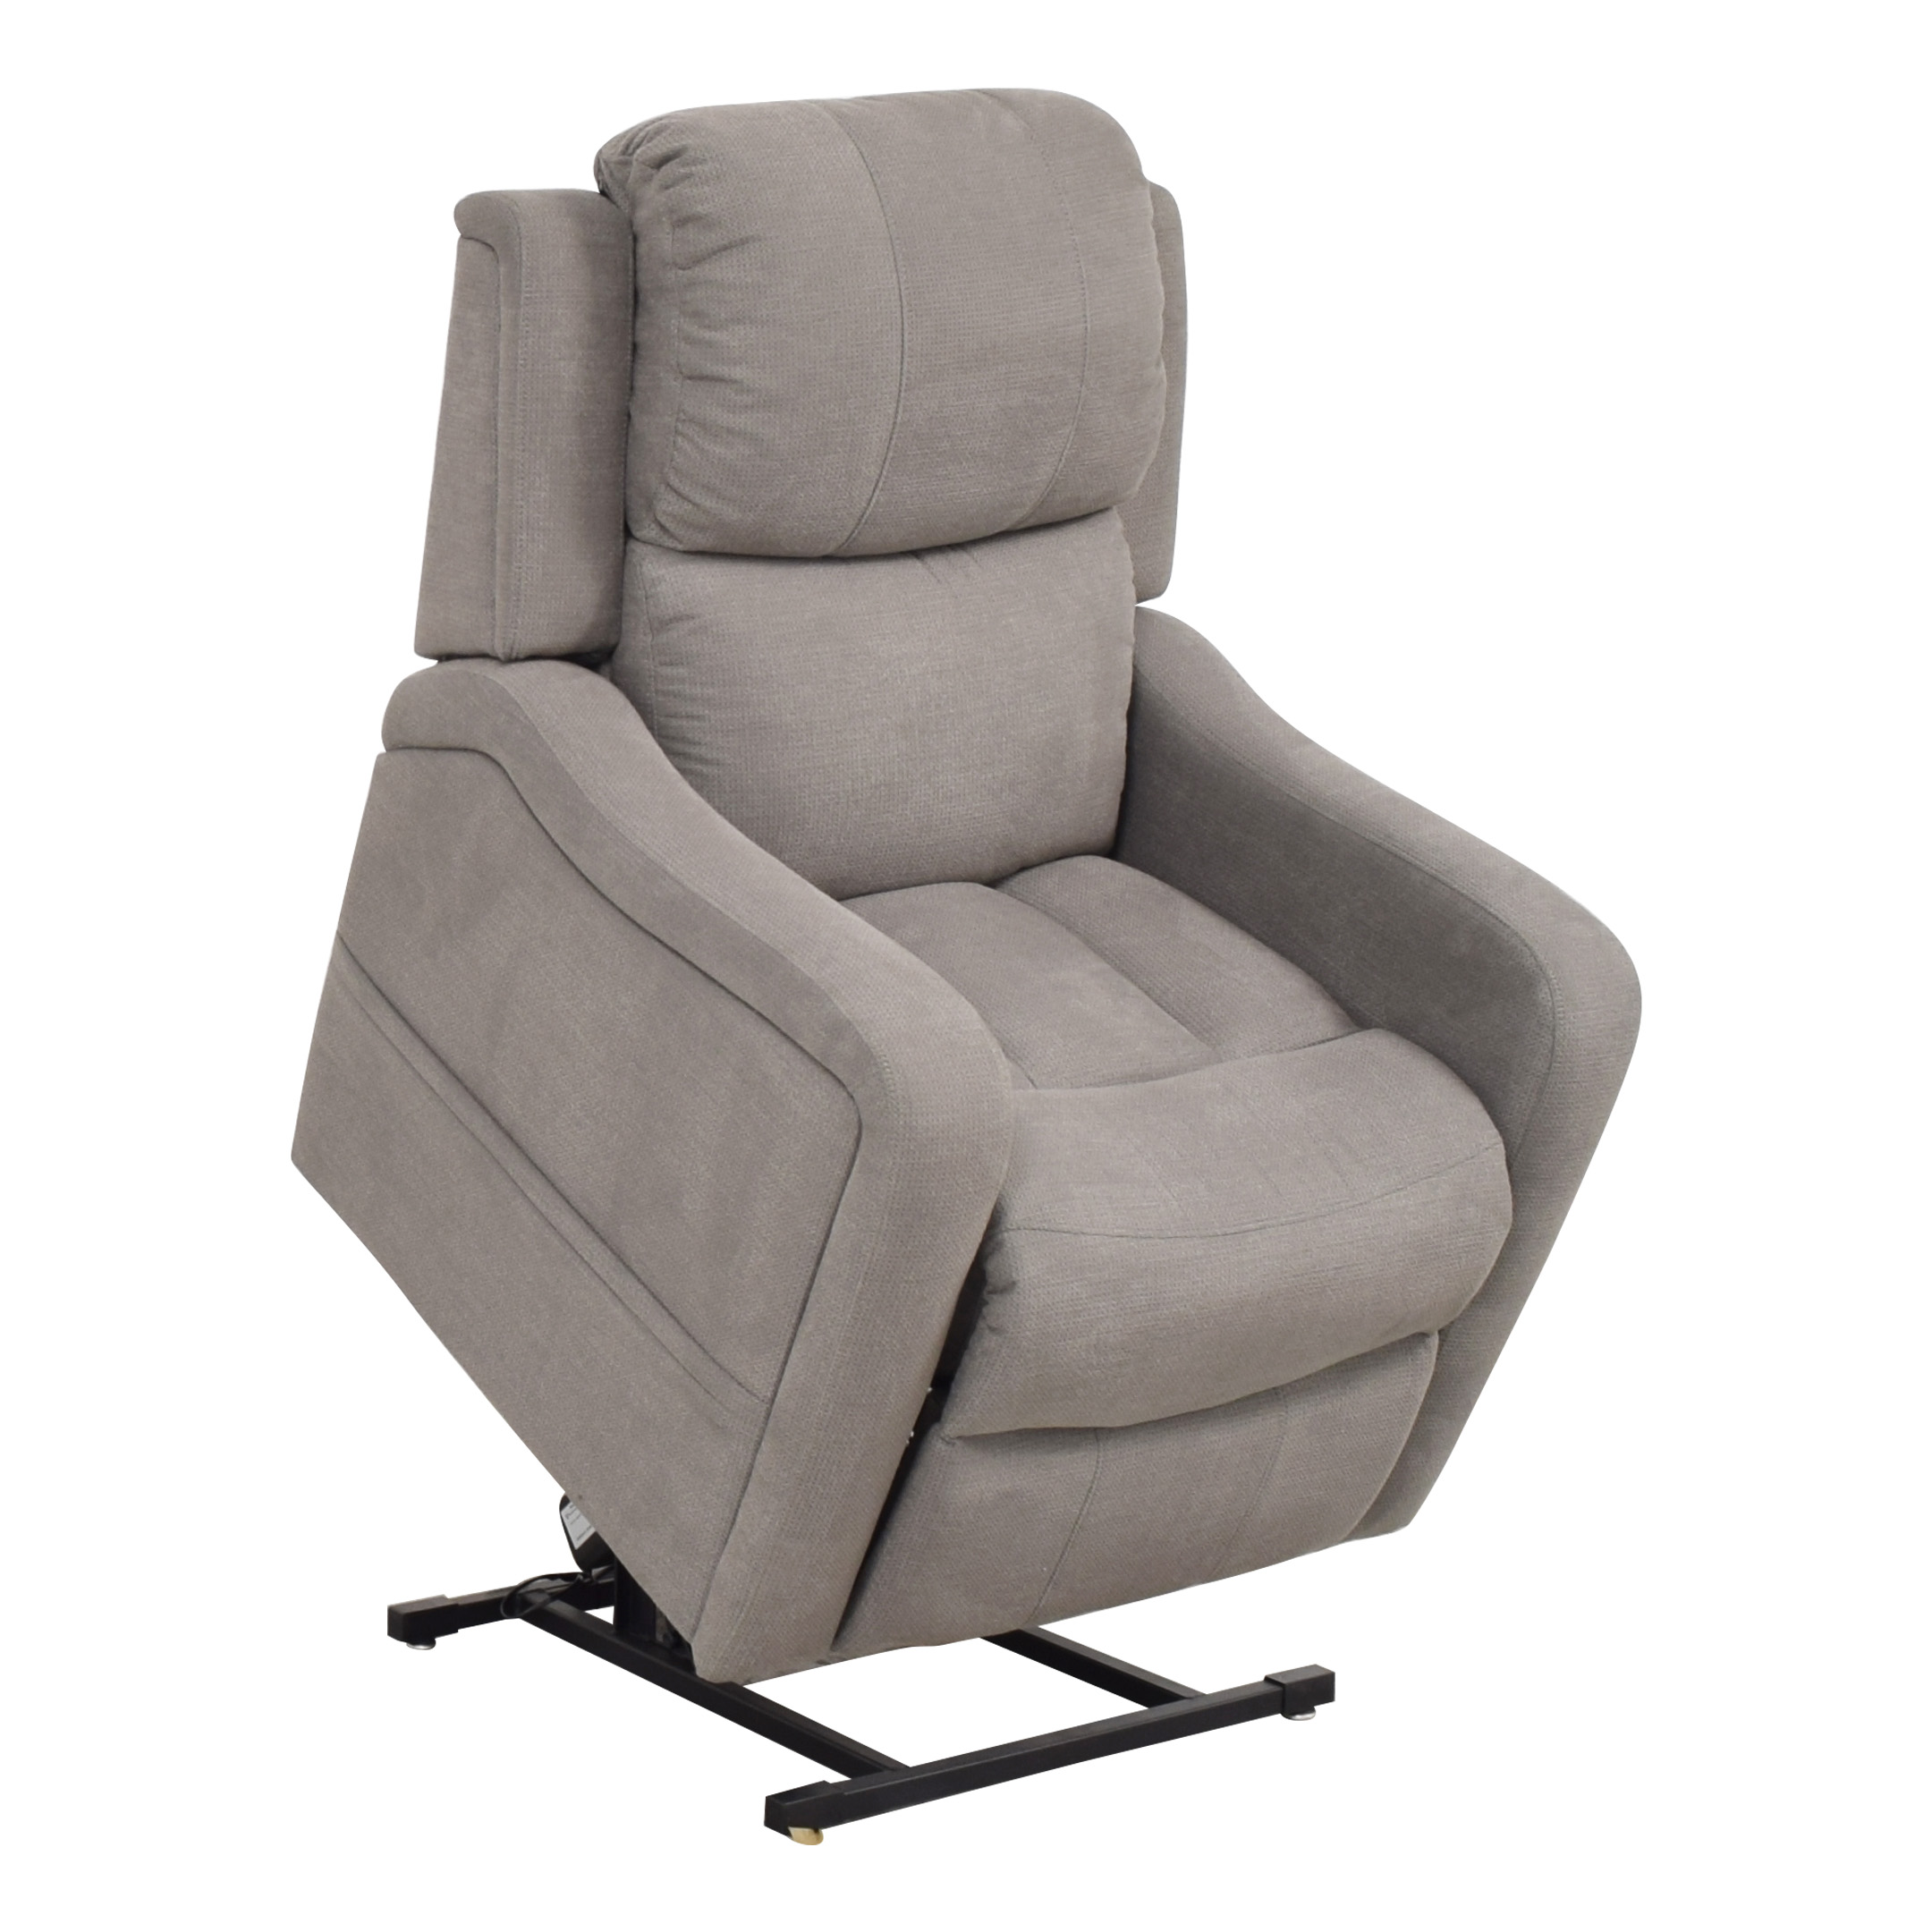 Copper River Home Therapedic Power Lift Reclining Chair / Recliners